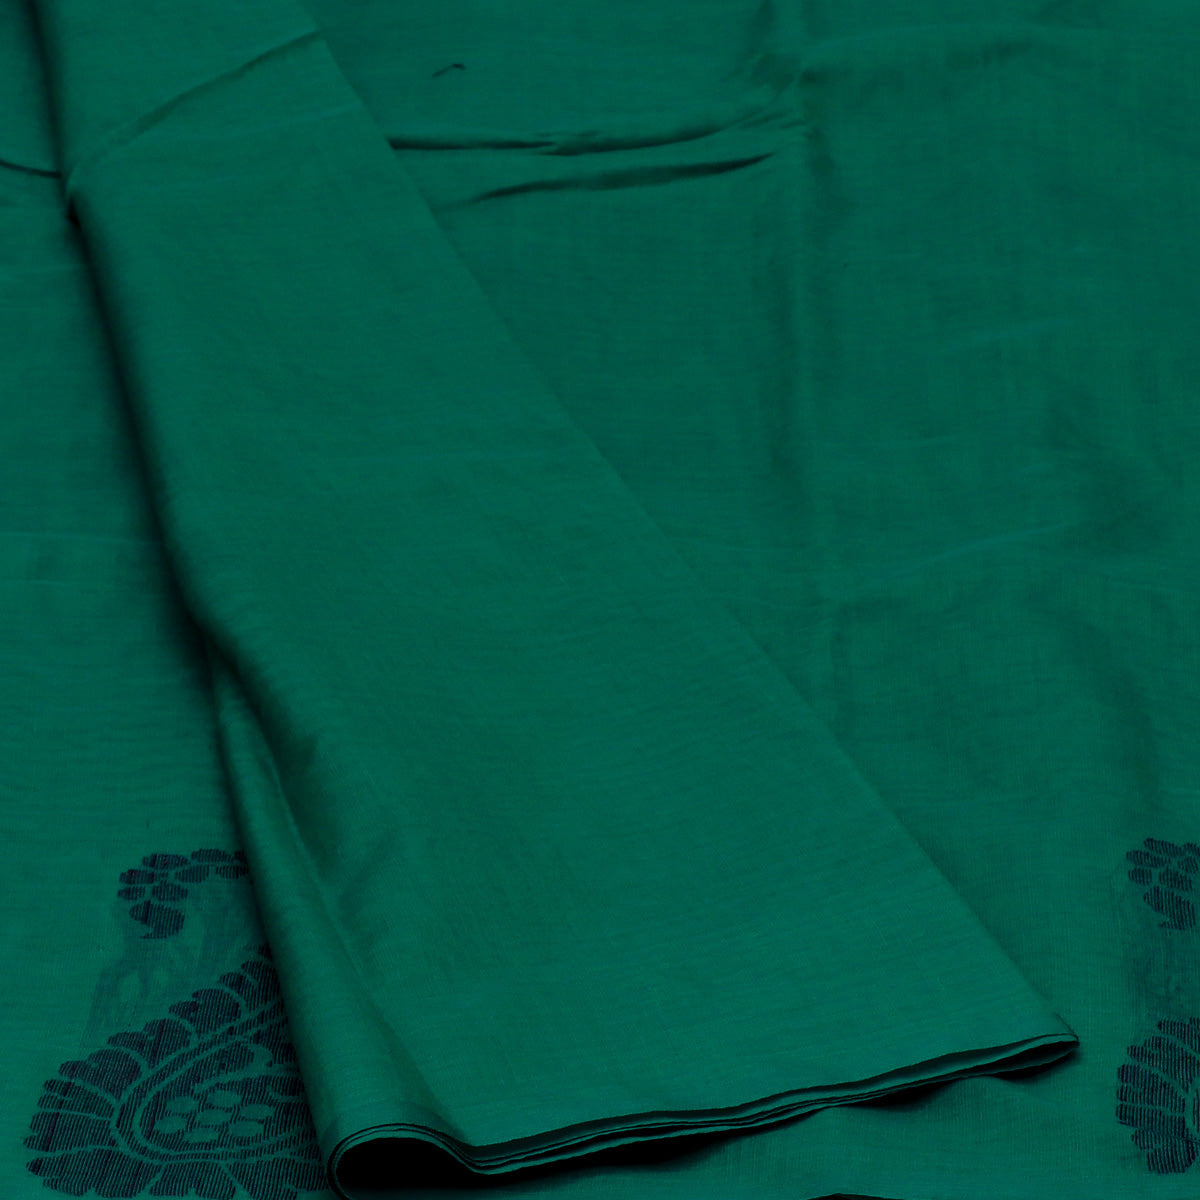 Kora Silk Saree sea Green and Black with Simple Border